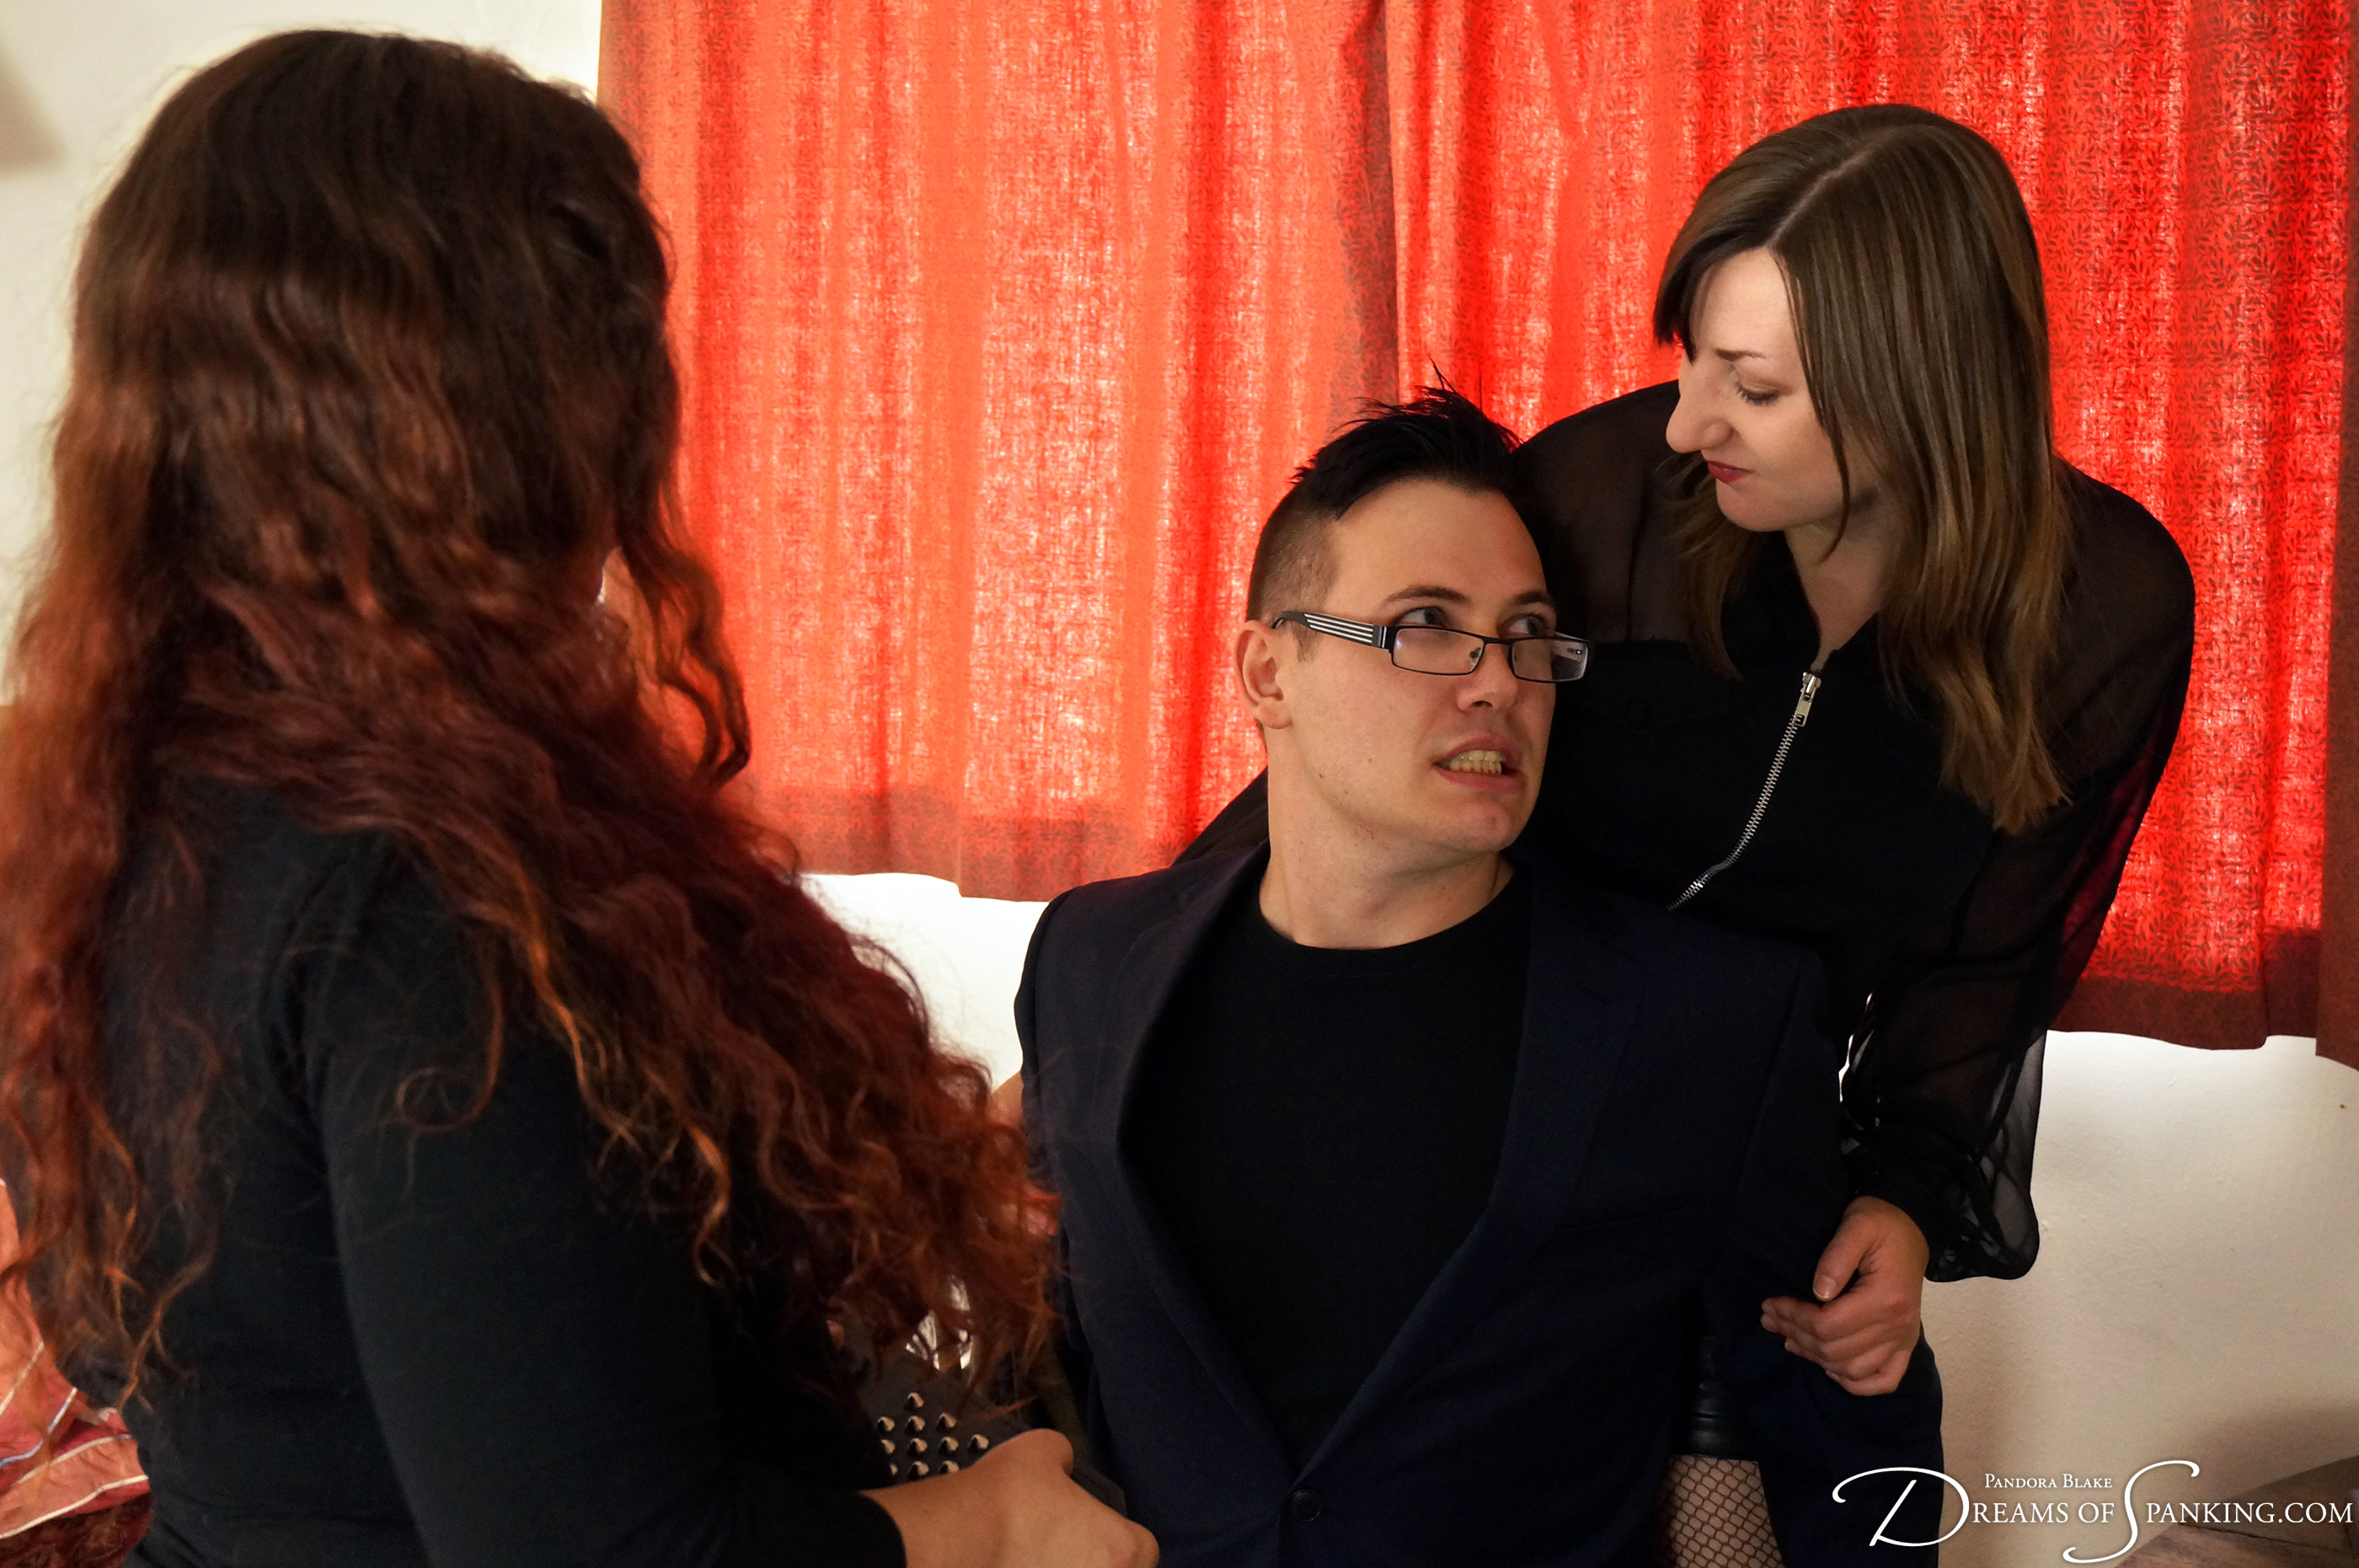 Gallery owner Michael is spanked hard for his chauvinistic ways